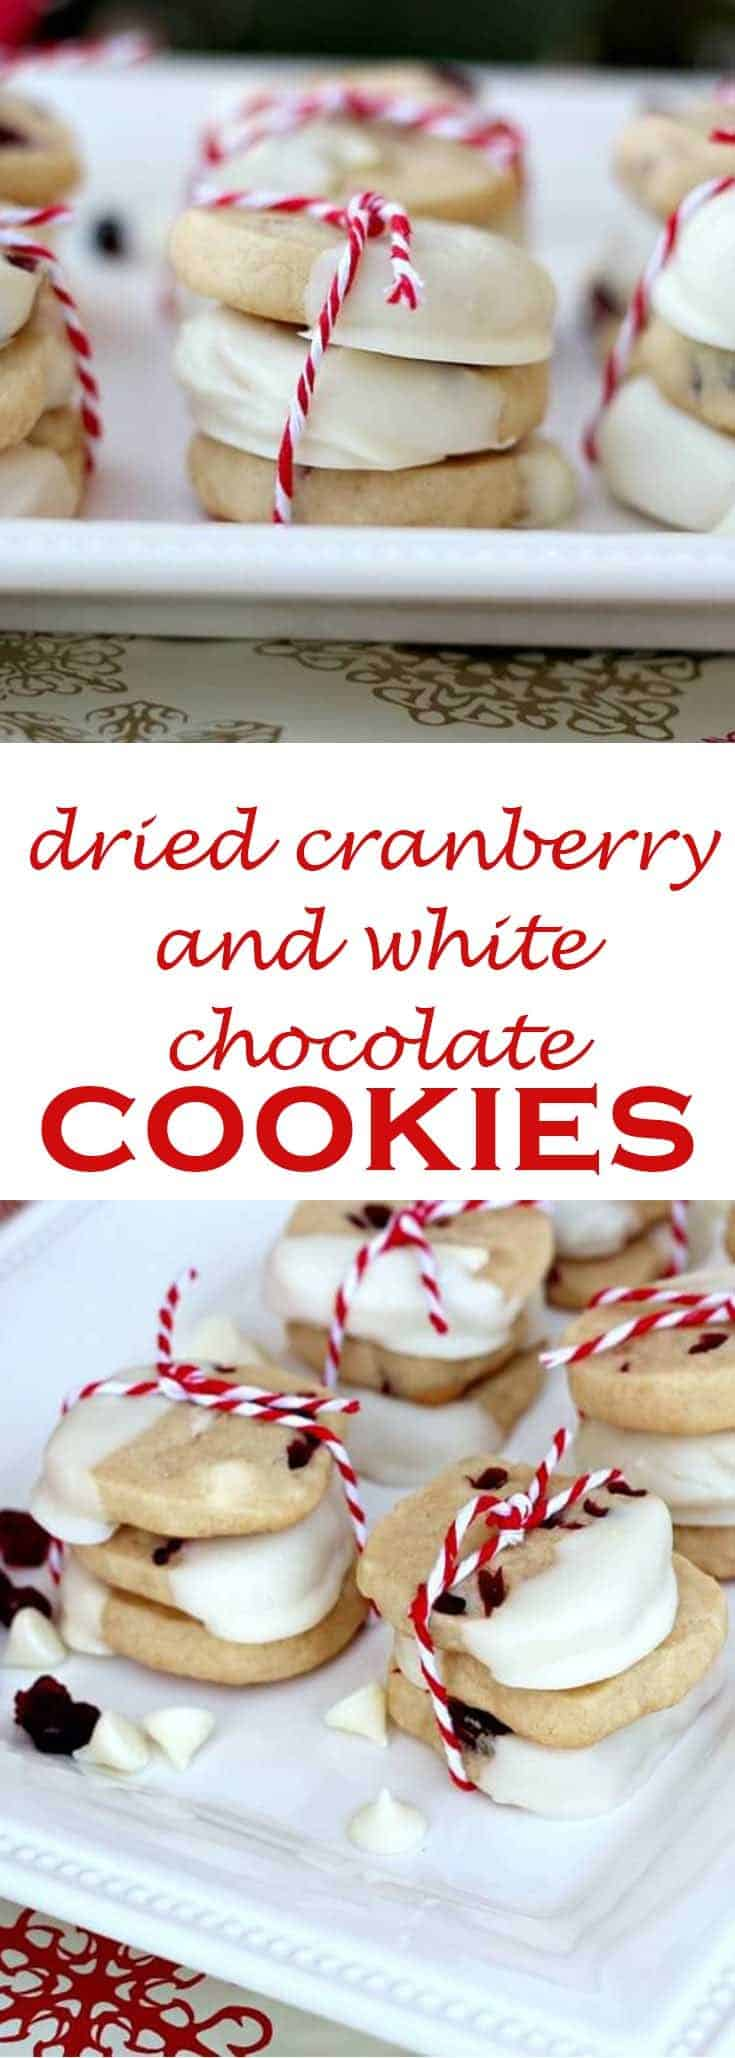 Dried cranberry and white chocolate cookies are decked out for the holidays when dipped in white chocolate! #christmascookies #cookierecipe #driedcranberries #driedcherries #abakershouse